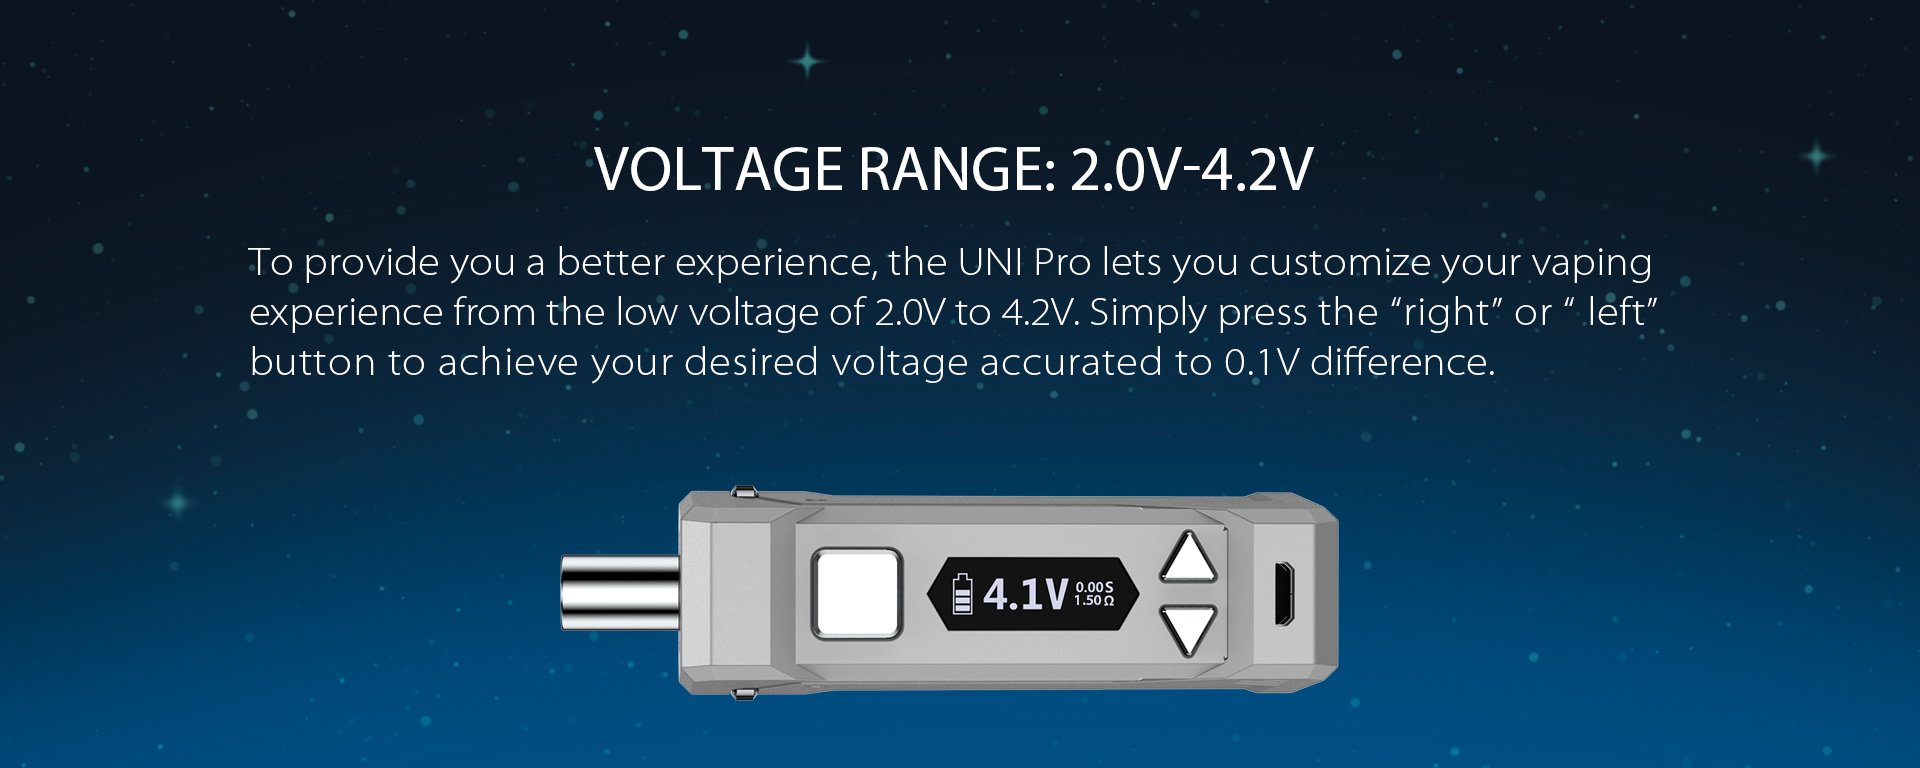 To provide you the better experience, the UNI Pro lets you customize your vaping experience by the voltage range starts from the low voltage of 2.0V to 4.2V.